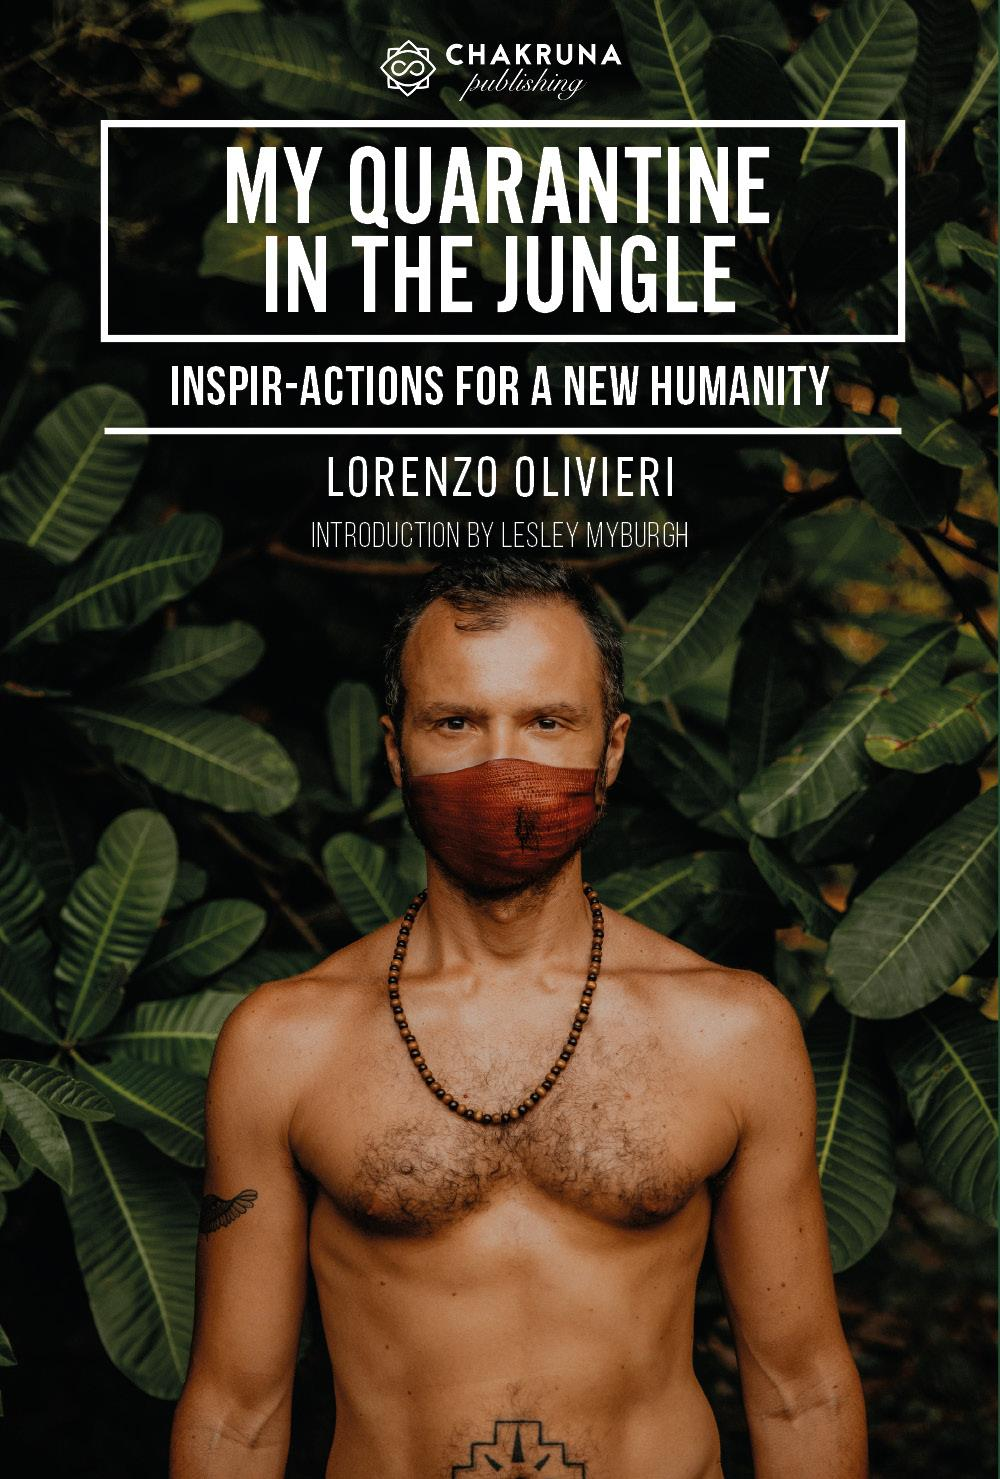 My Quarantine in the Jungle. Inspir-Actions for a New Humanity